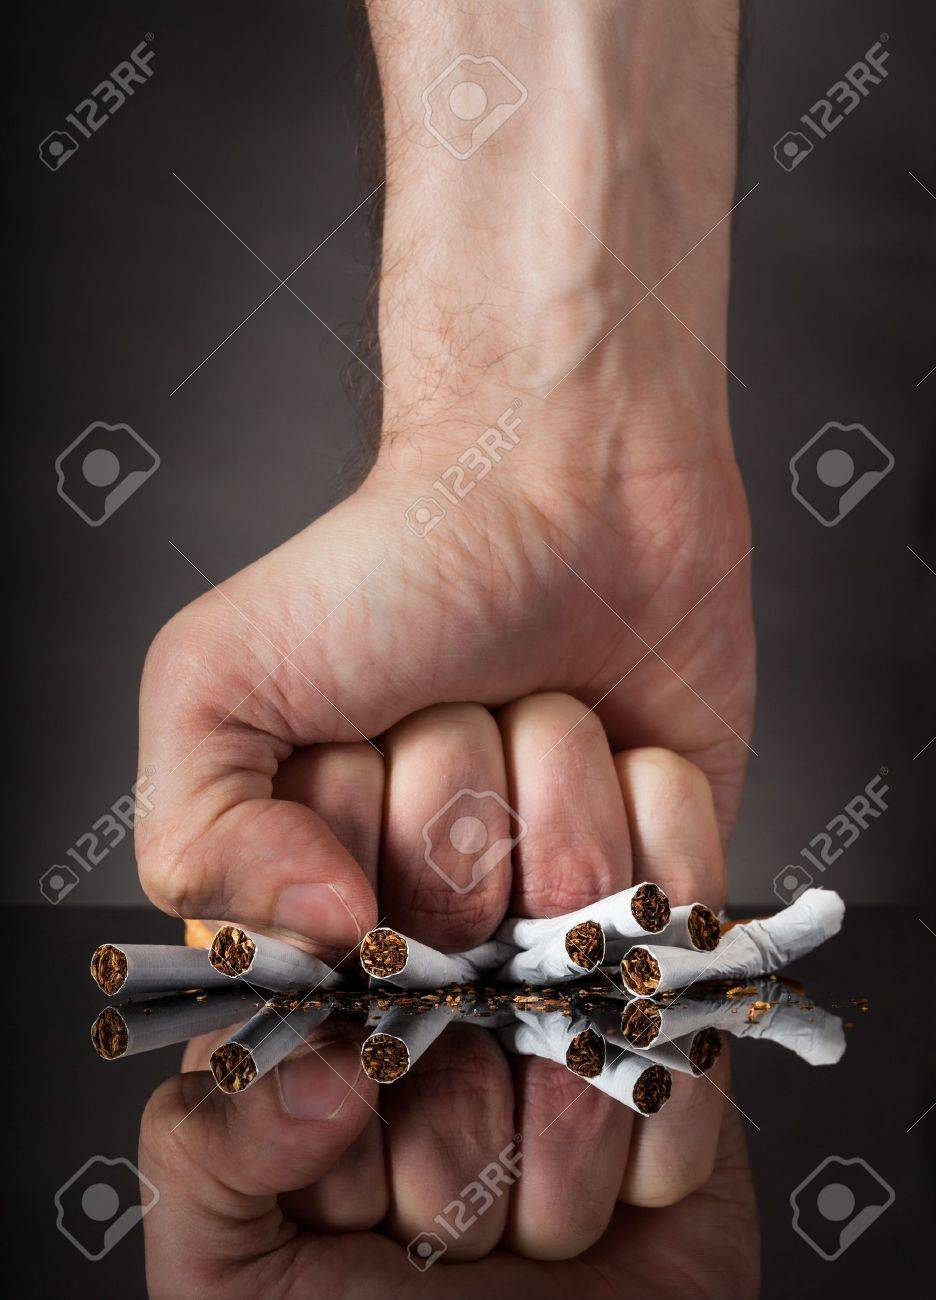 Close-up Of  Man's Fist Crushing Cigarettes Over Black Background Stock Photo - 21253832